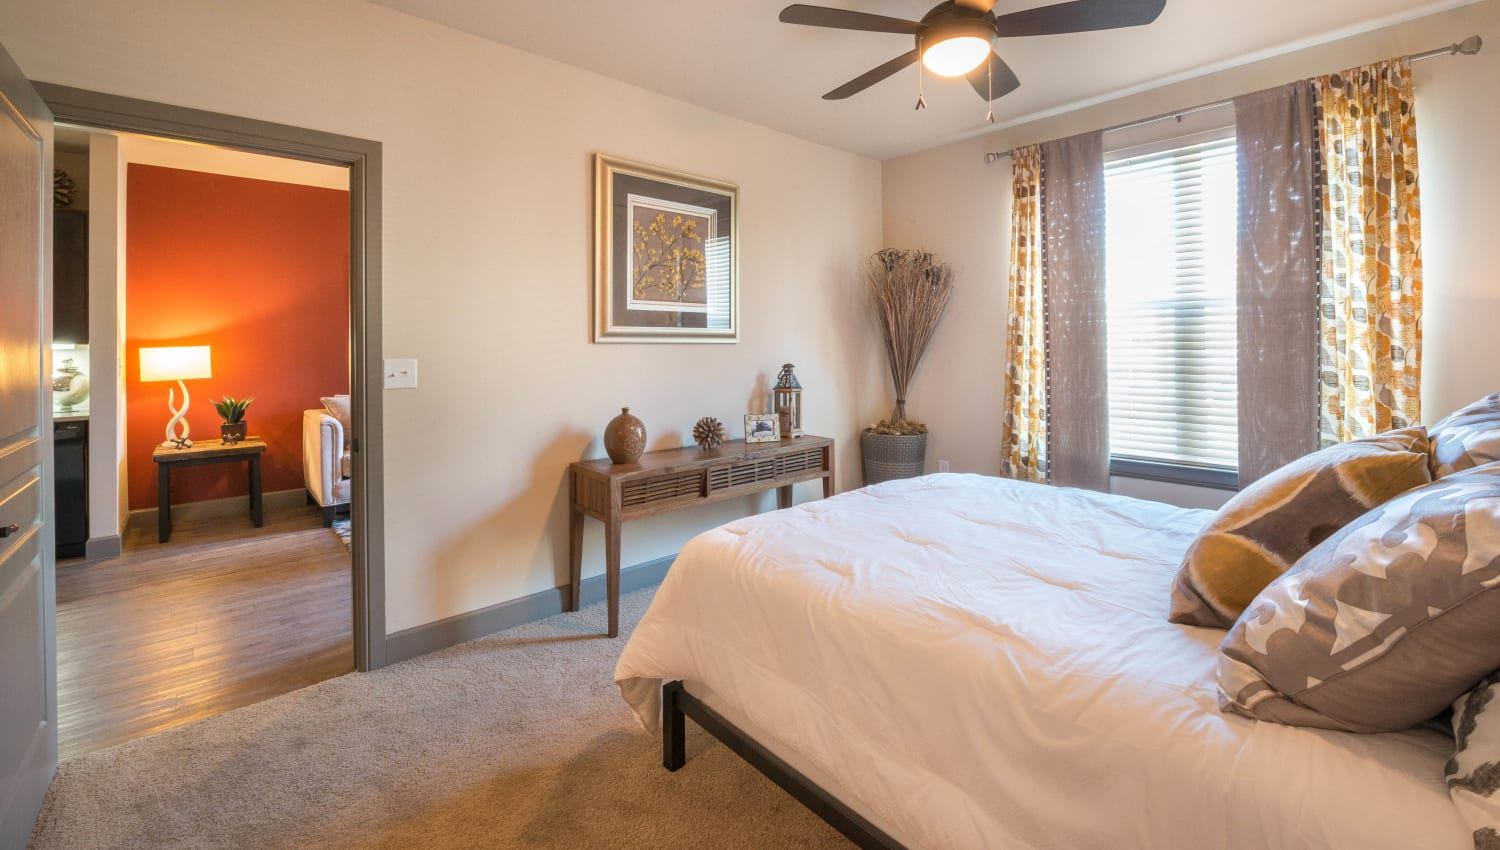 Ceiling fan and draped windows in a model home's bedroom at Union At Carrollton Square in Carrollton, Texas